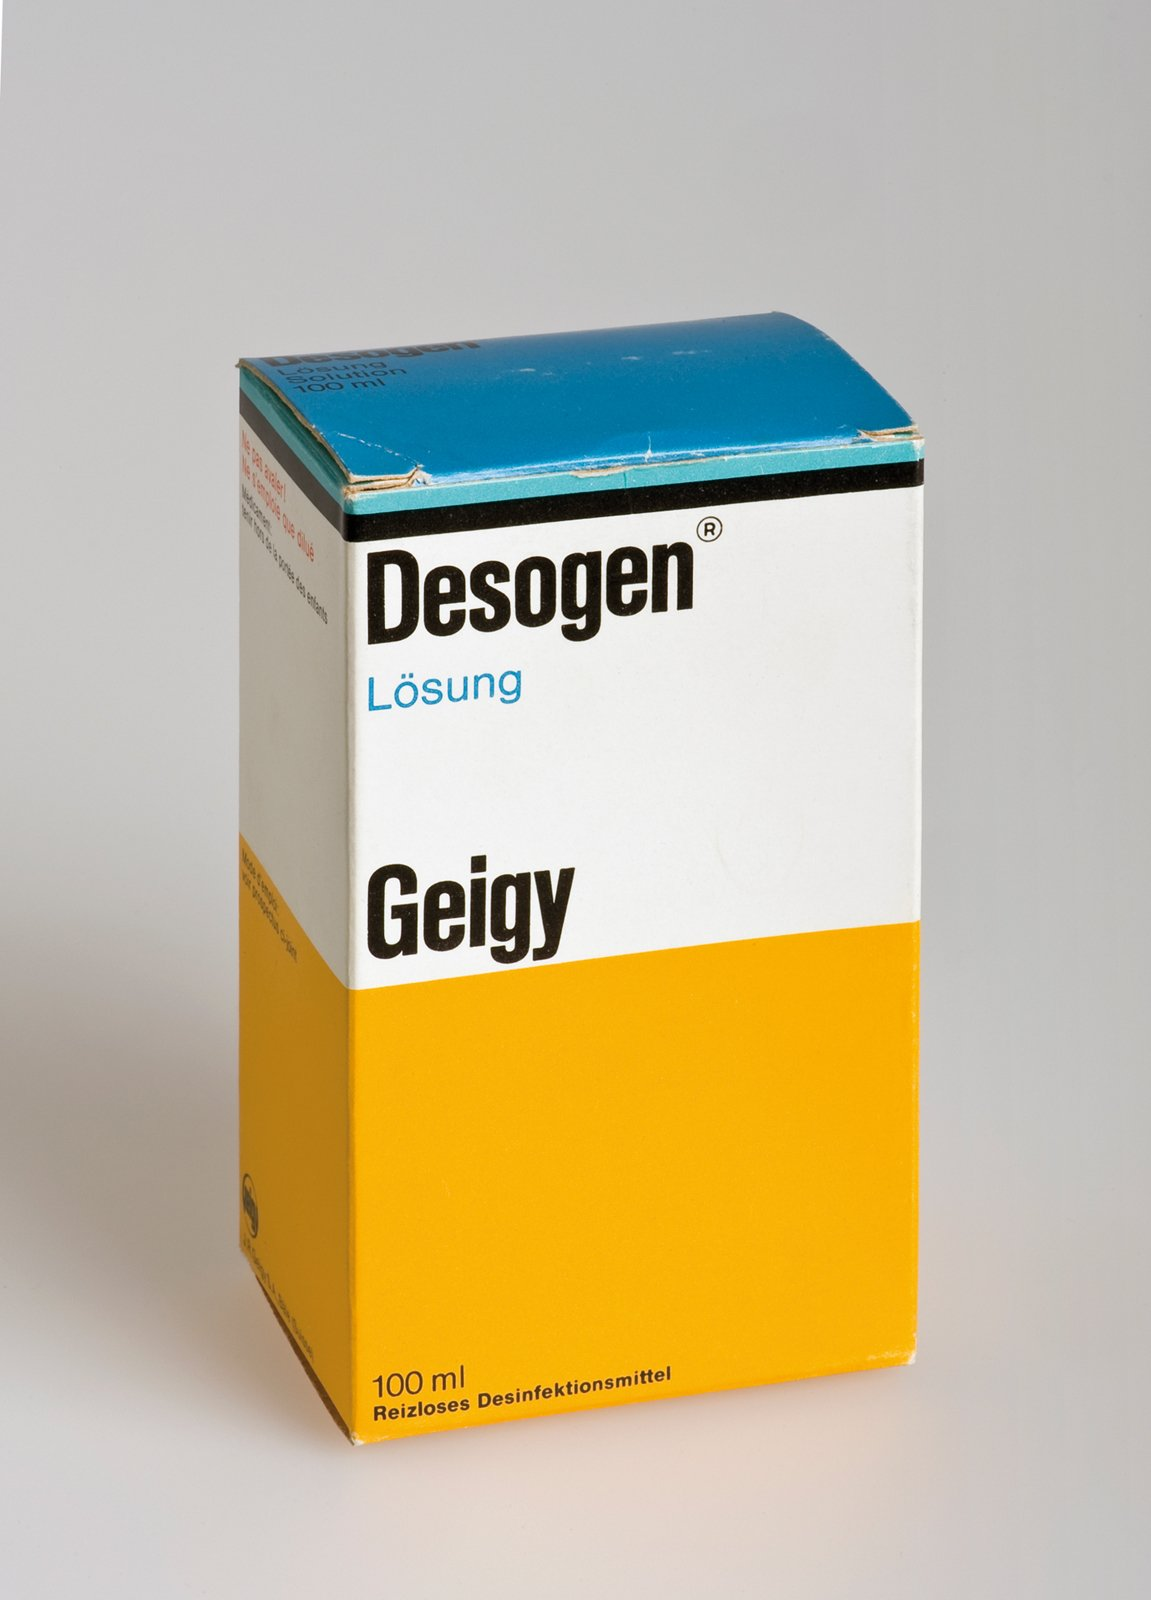 By the 60s, the packaging for all of Geigy's medications came with the identifying stripe and color blocks. Suddenly pharmacy shelves could be read as full of Geigy products from across the store. Max Schmid did the design.  Geigy's Graphic Design  by Dwell